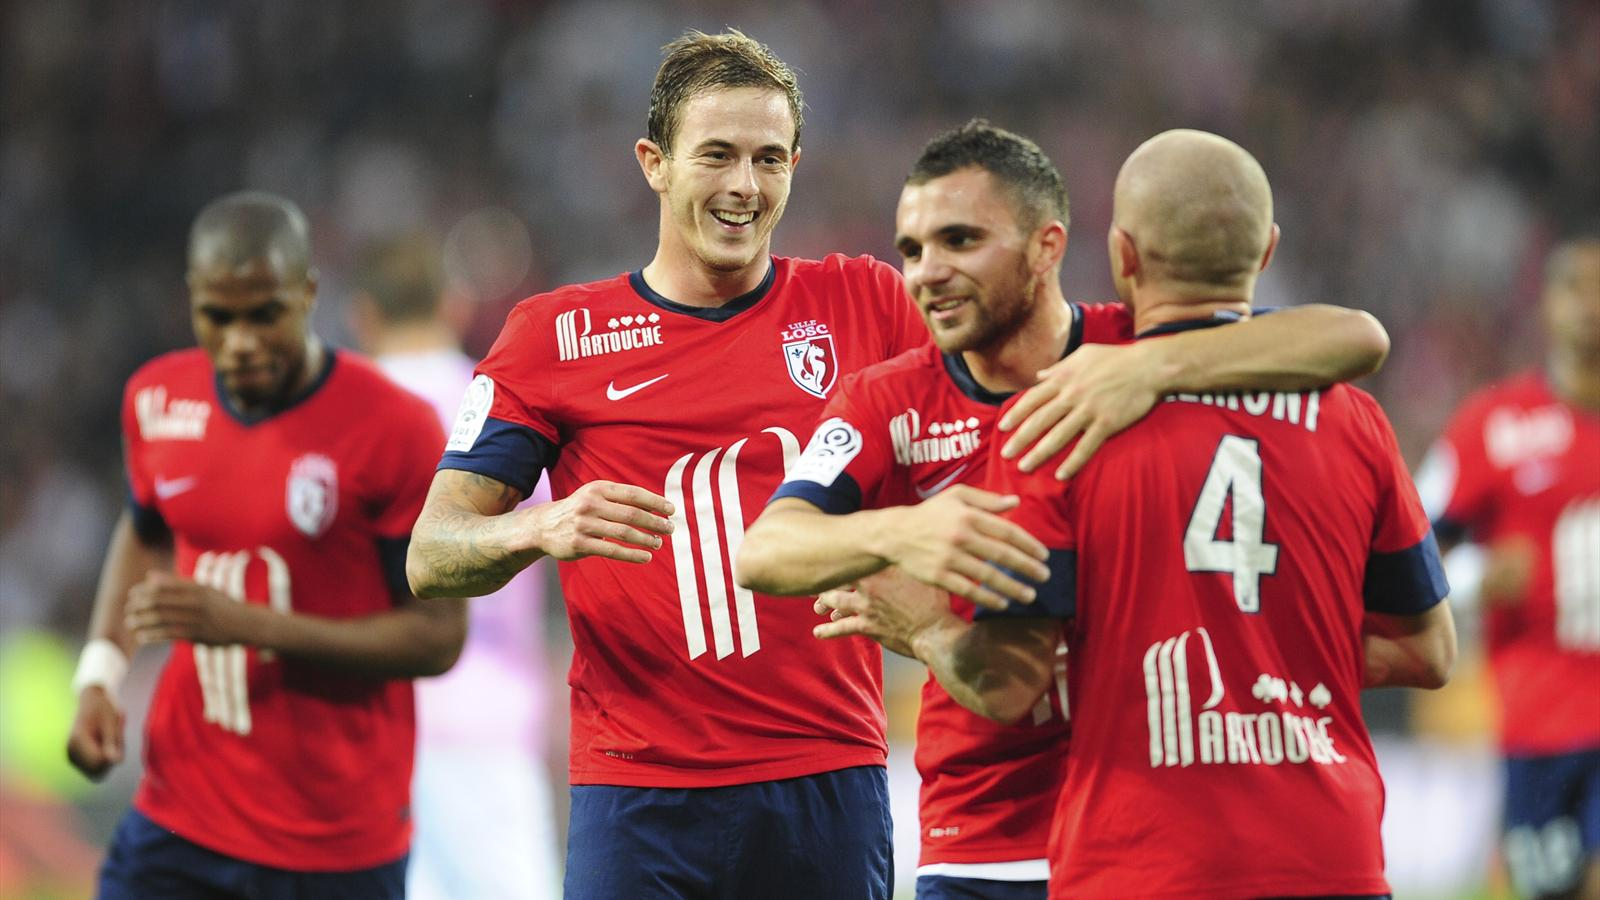 Match LOSC Lille vs FK Krasnodar en direct streaming live